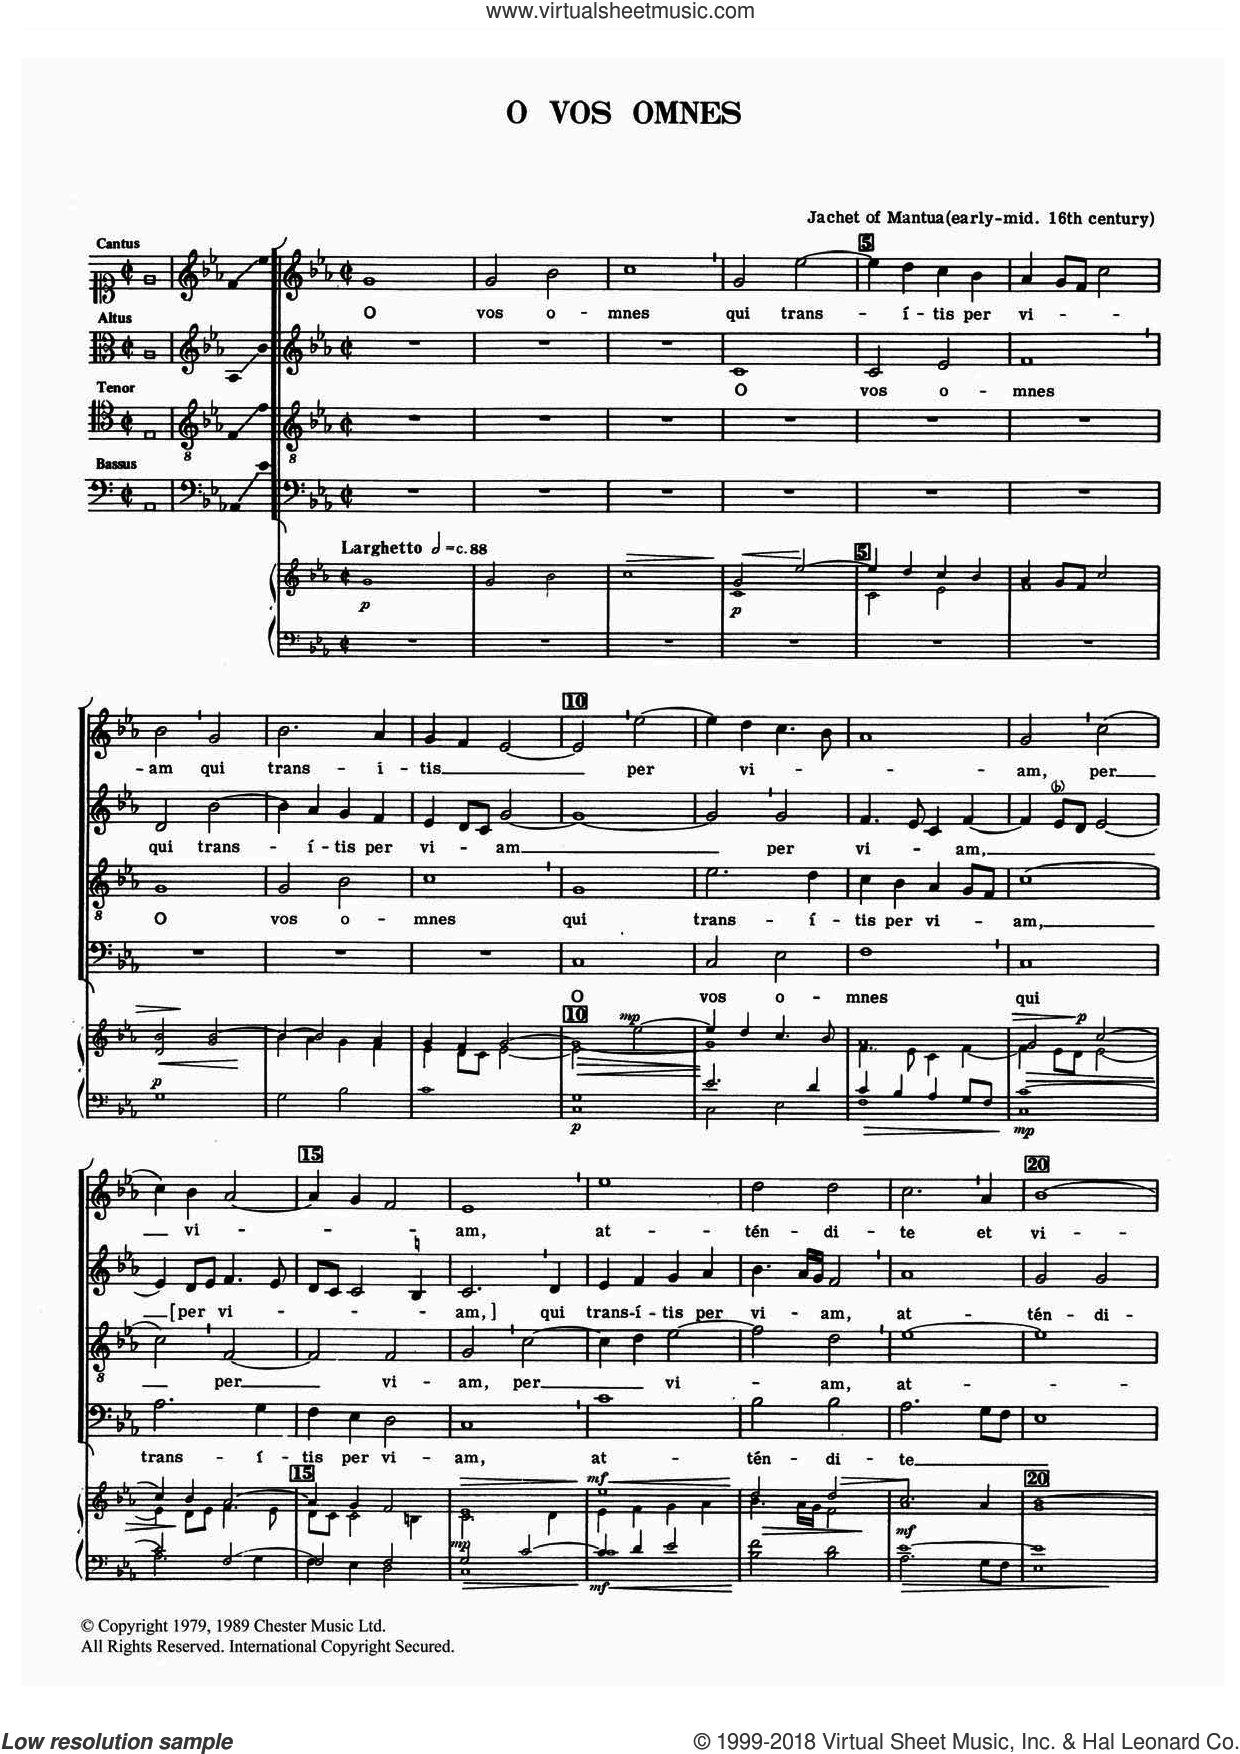 O Vos Omnes sheet music for choir by Jachet of Mantua, classical score, intermediate skill level